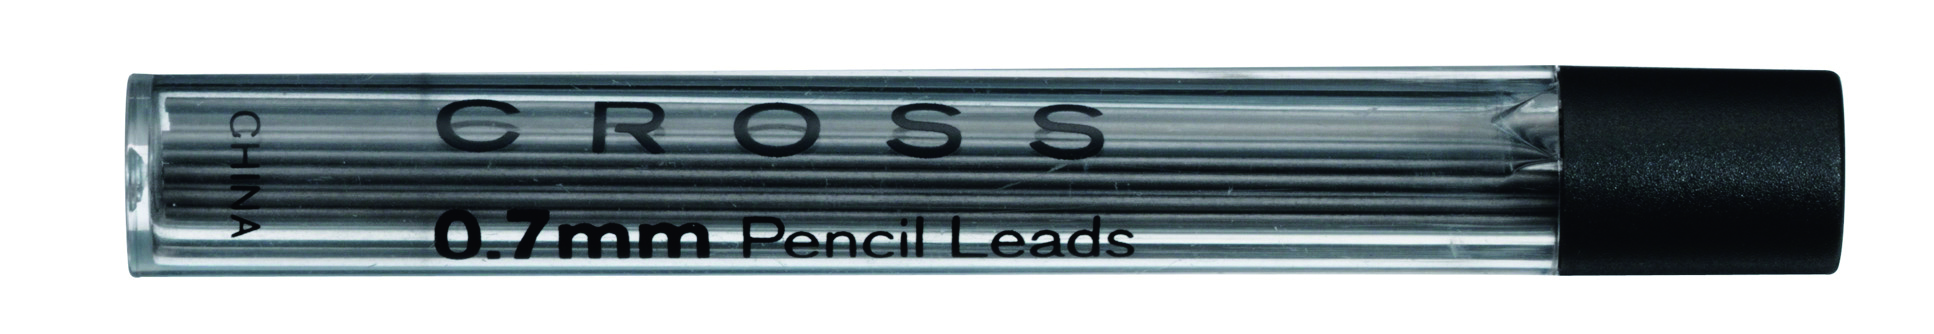 Pencil Leads - 0.7MM Refills for Loose Lead Pencils - 15 Leads